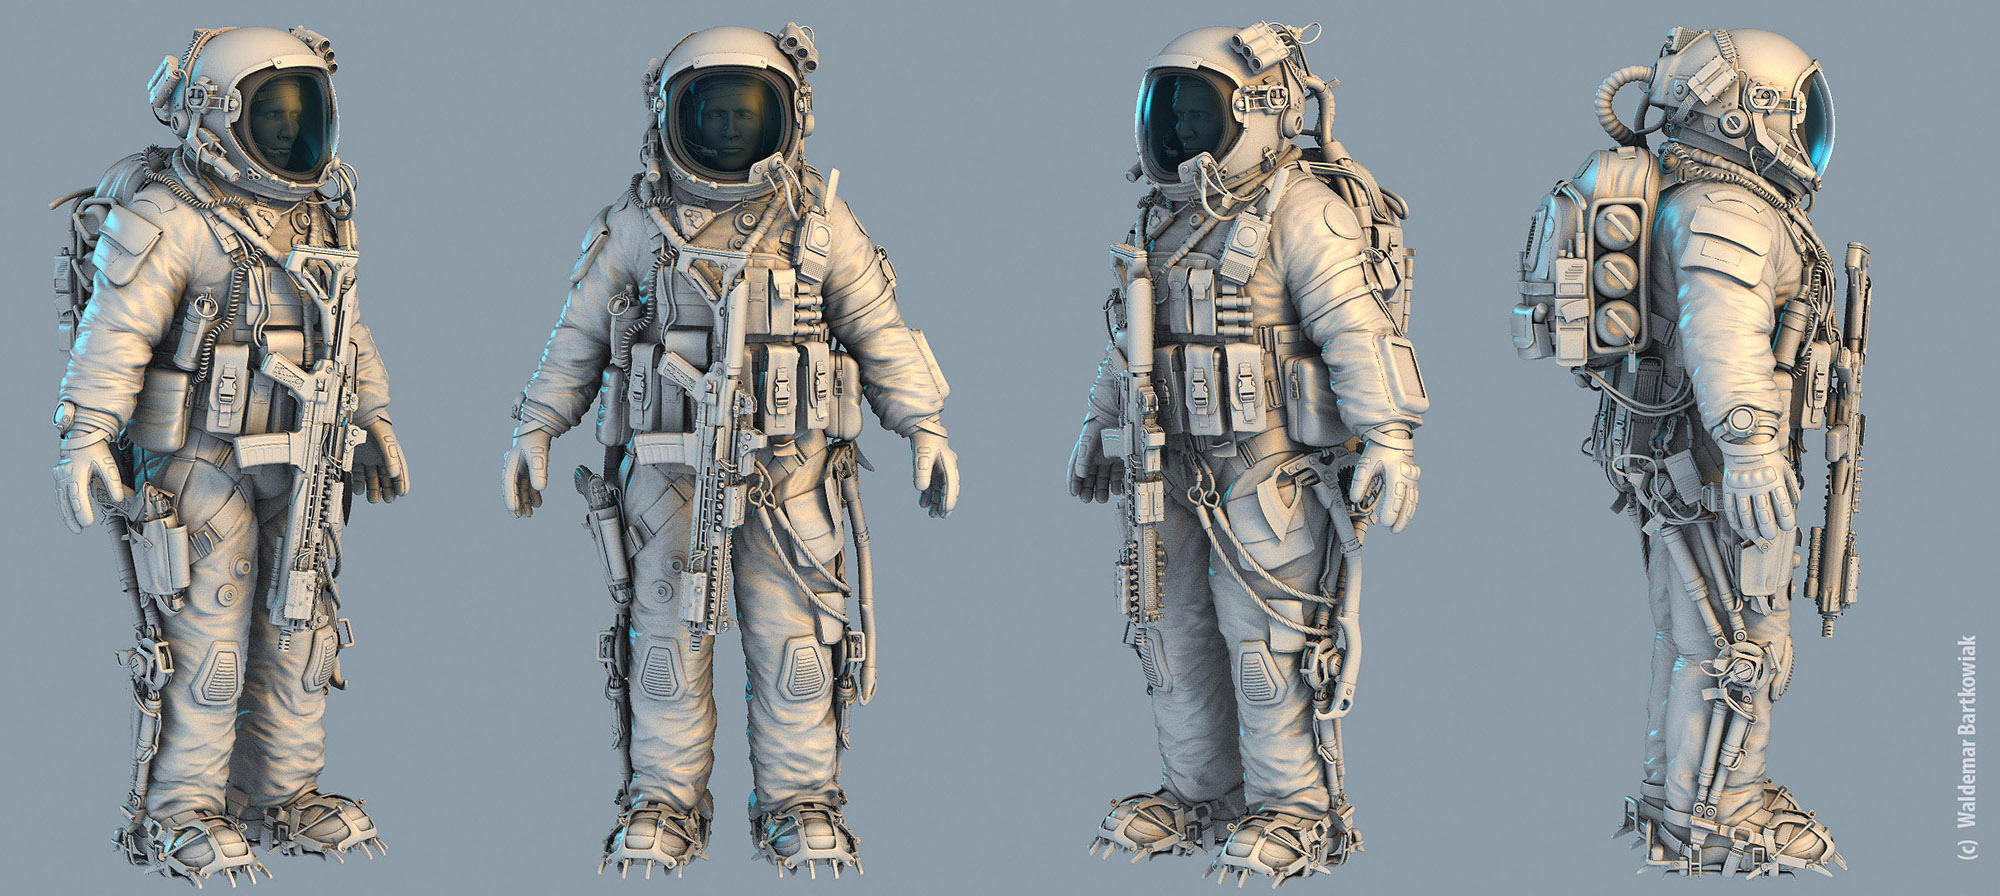 how to become a space suit engineer